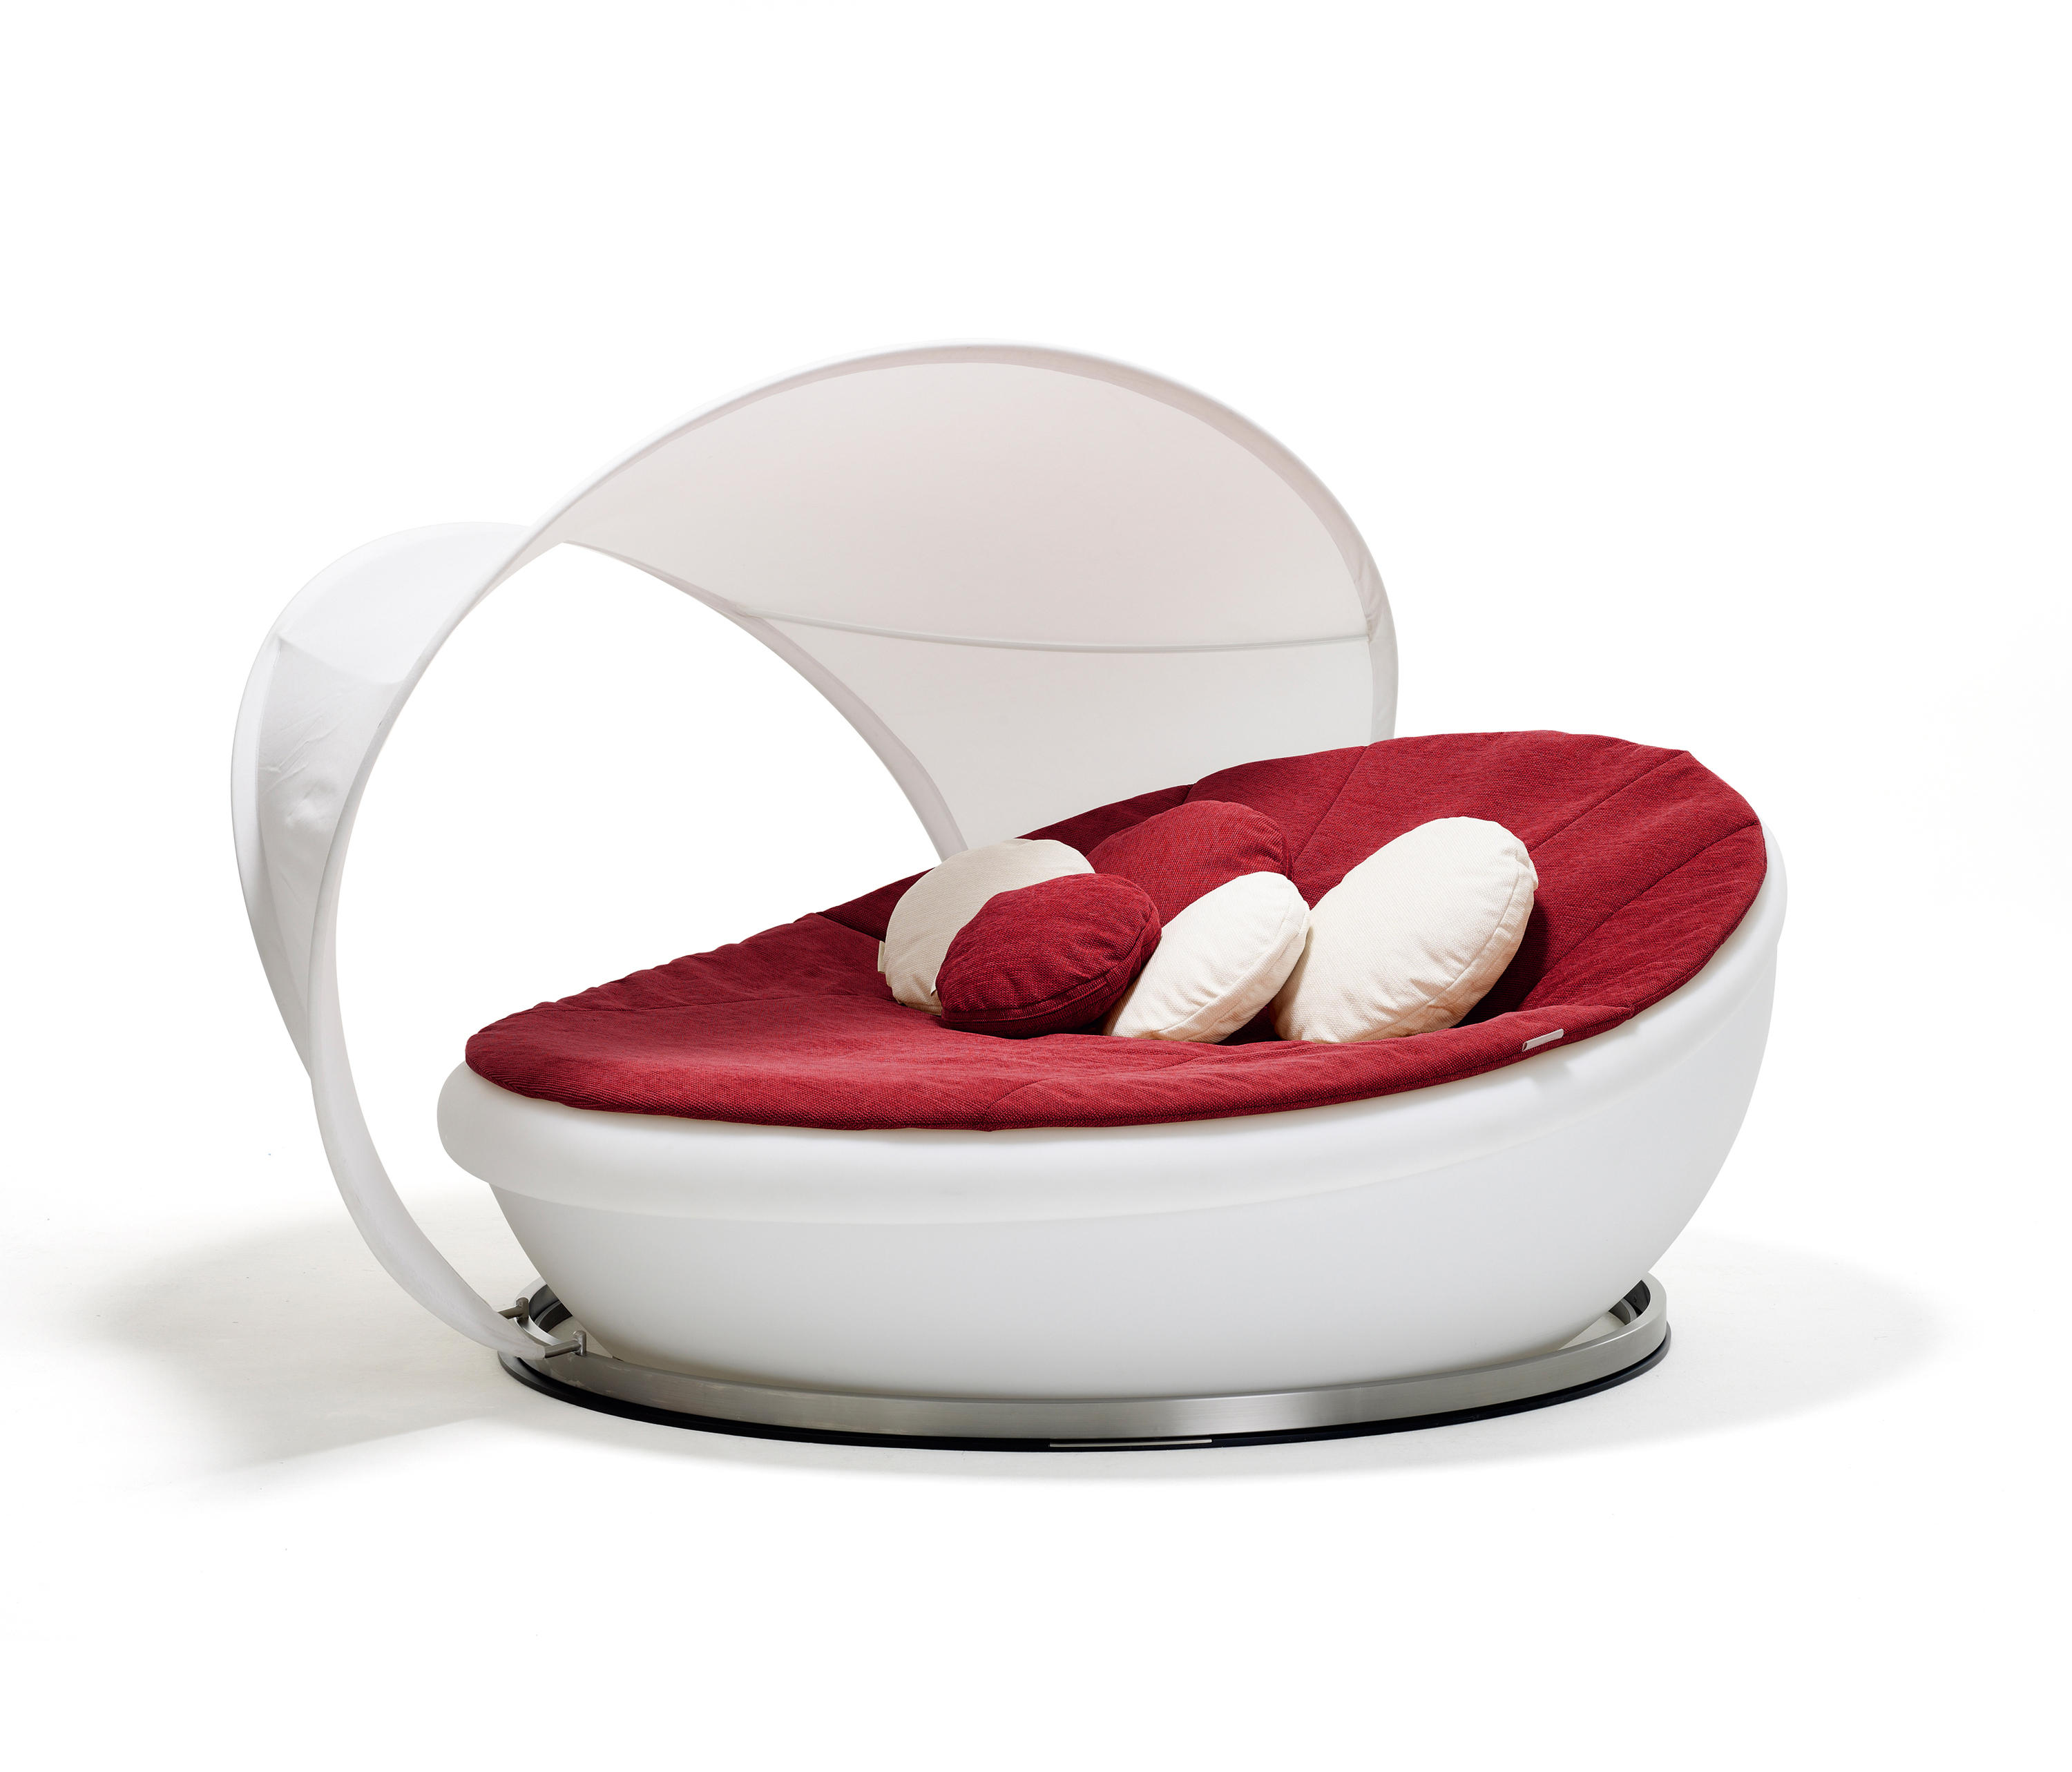 Daybed garten  LAGOON DAYBED - Seating islands from solpuri | Architonic